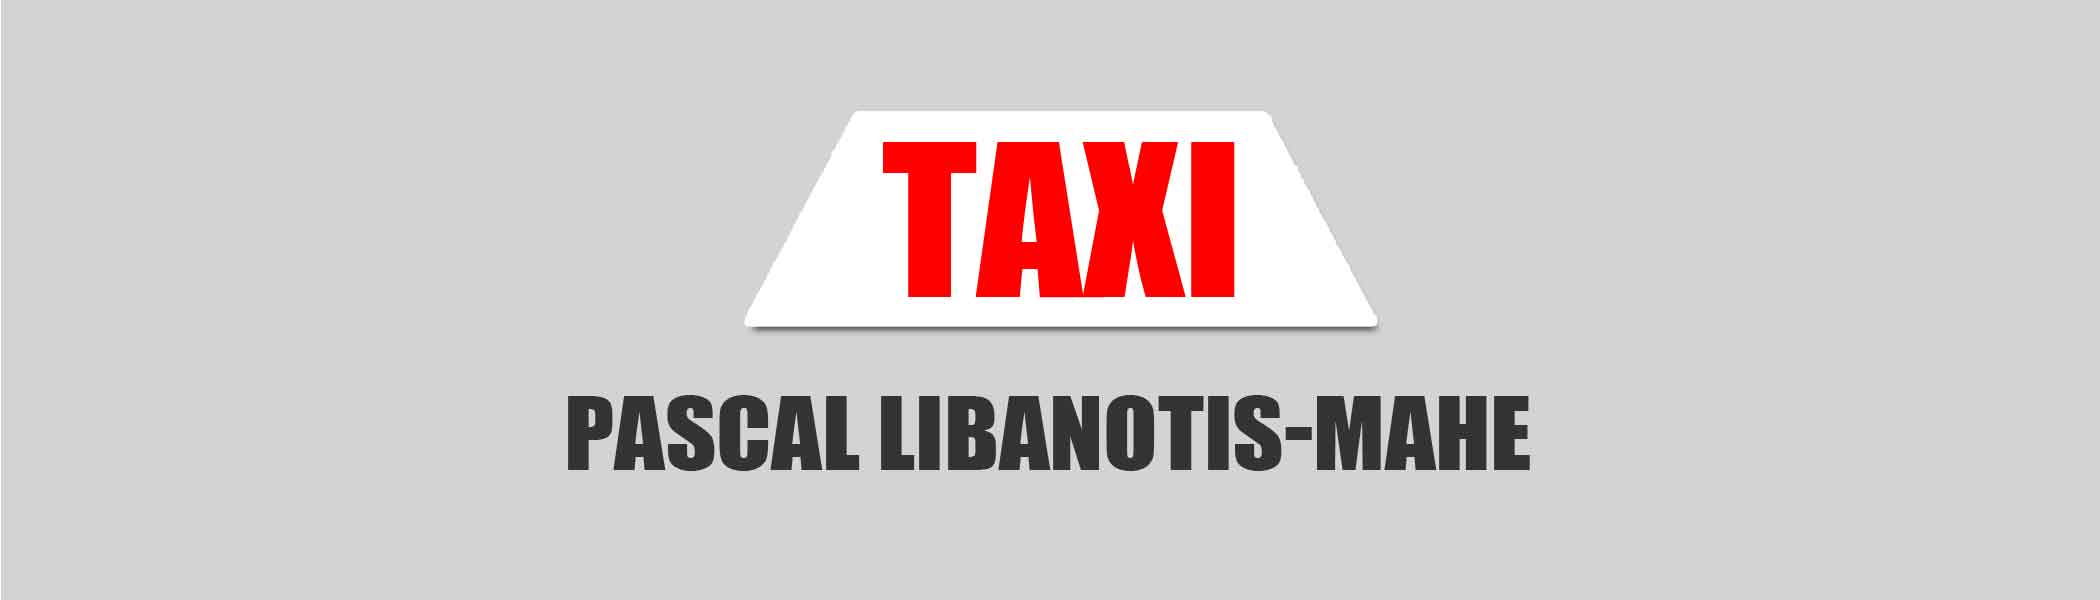 pascal-libanotis, Taxis in Seychelles Islands